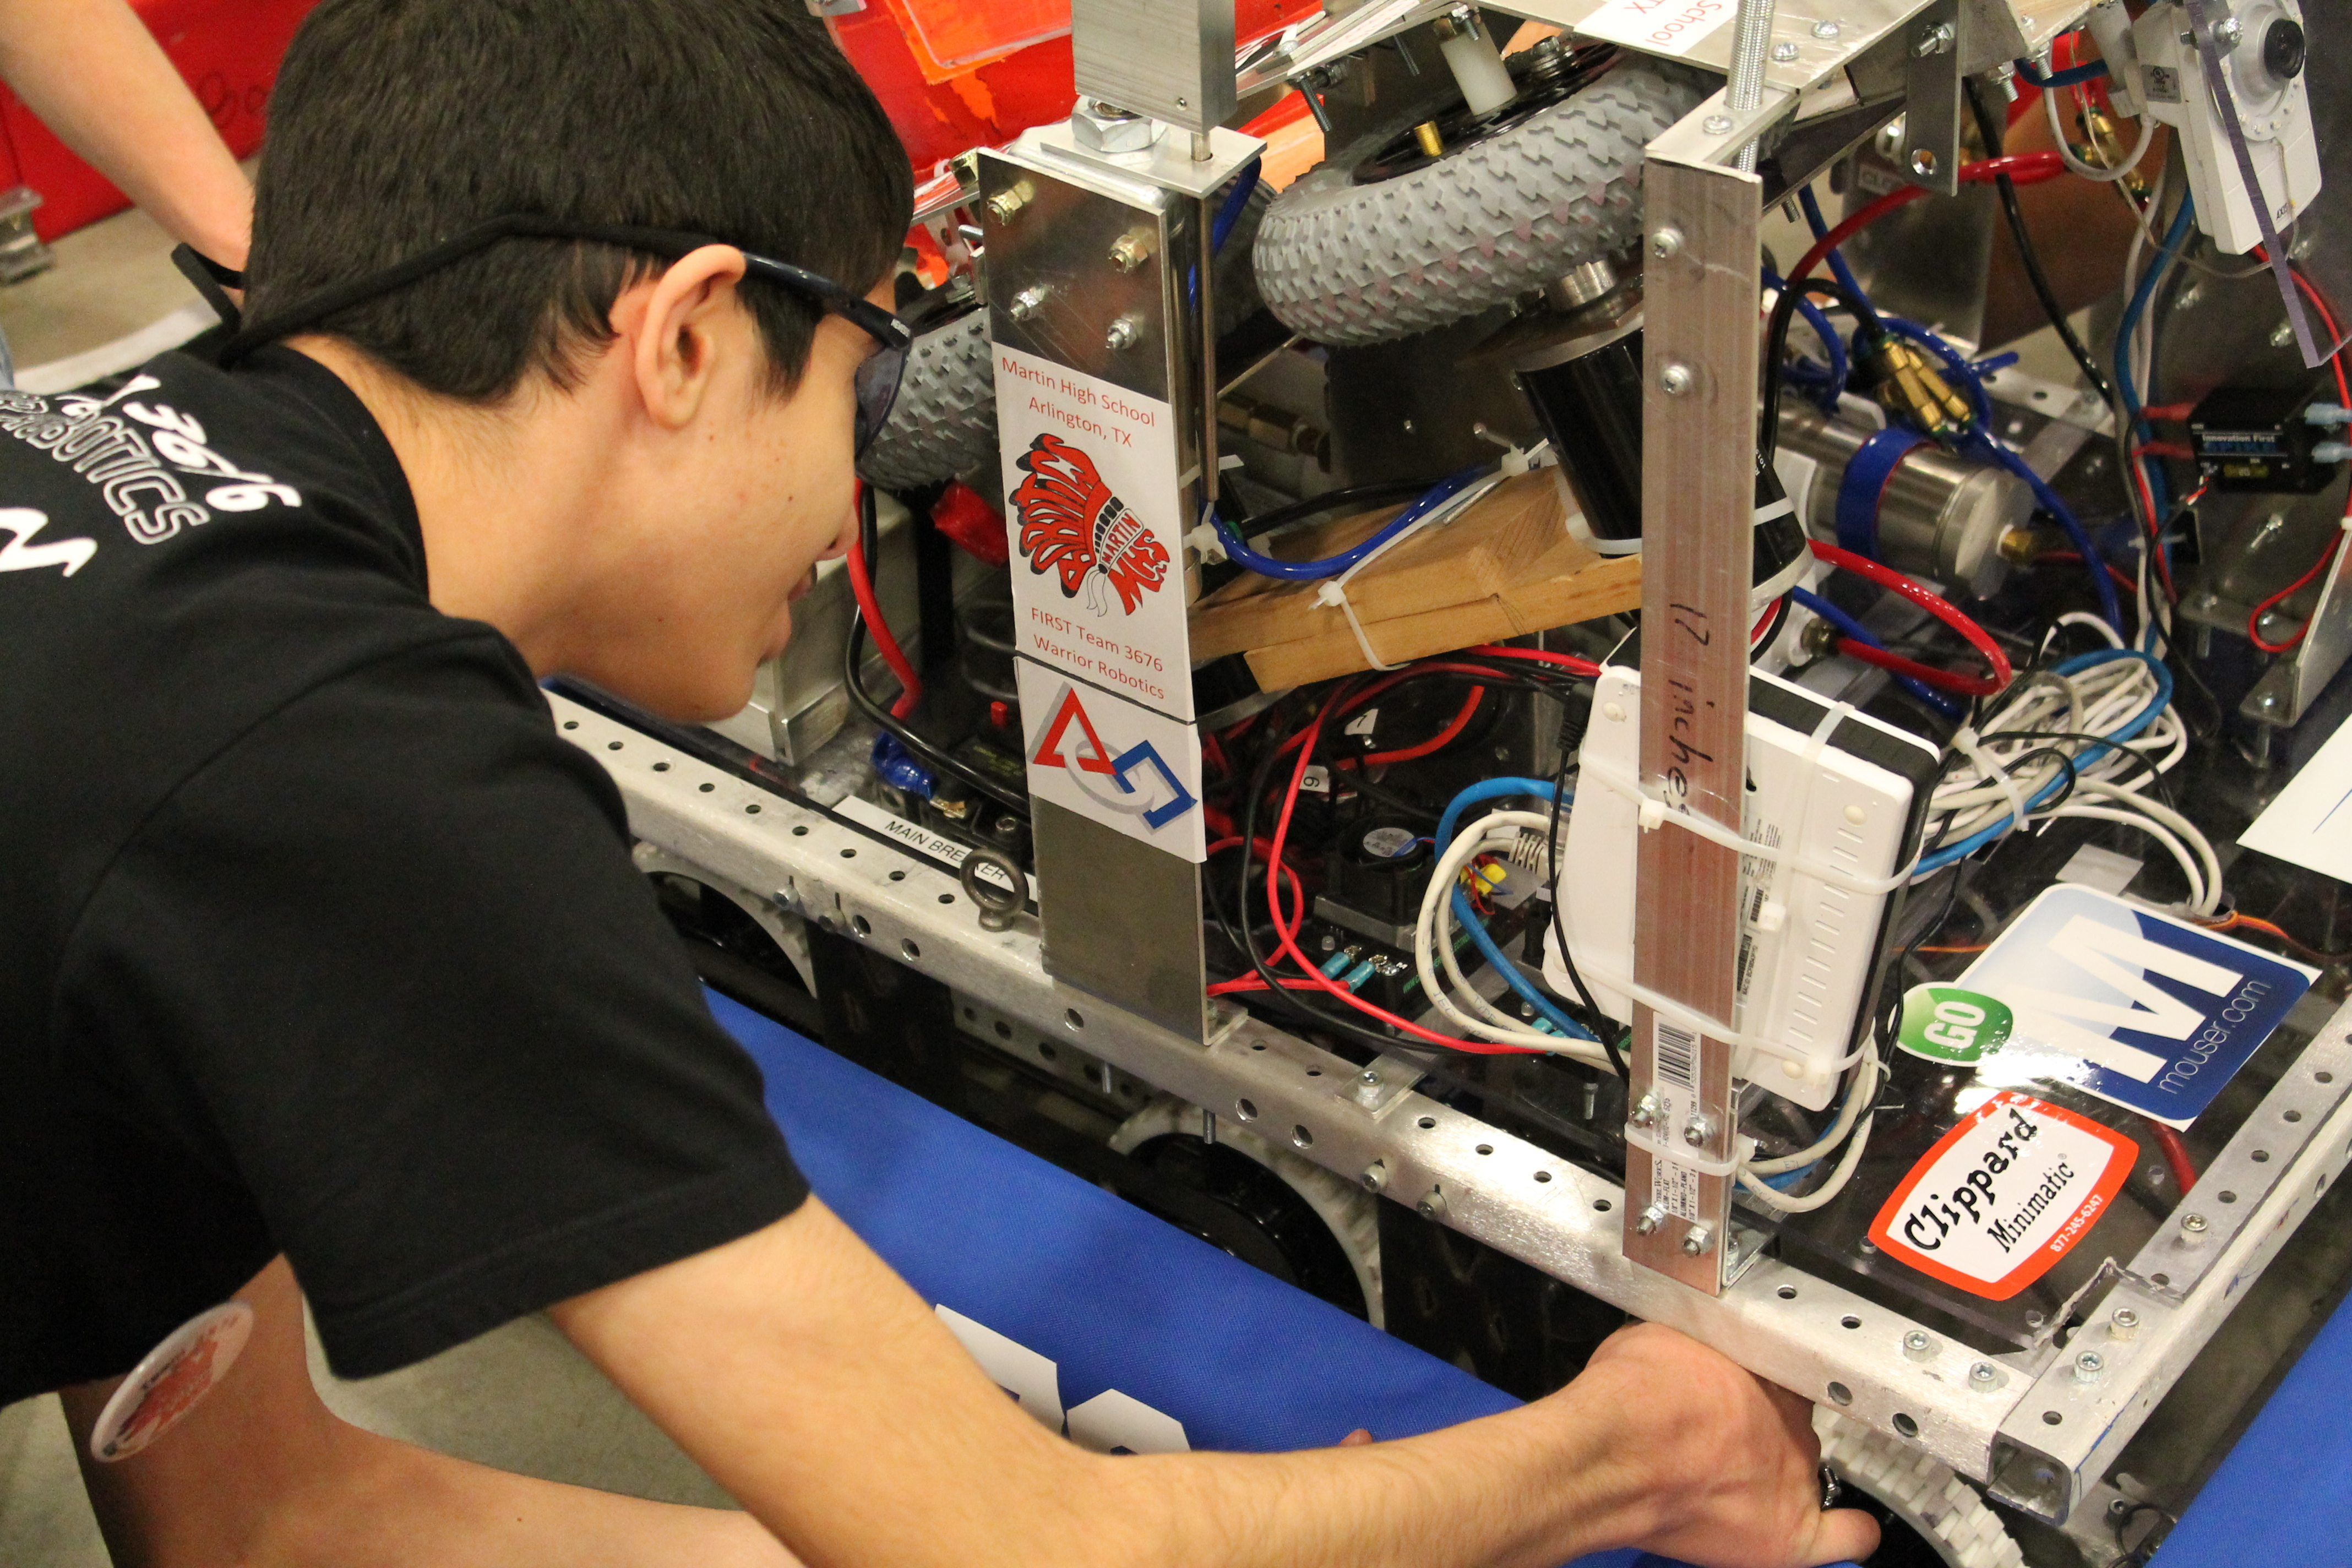 Mouser Electronics Inspires Future Engineers Through Sponsorship Of